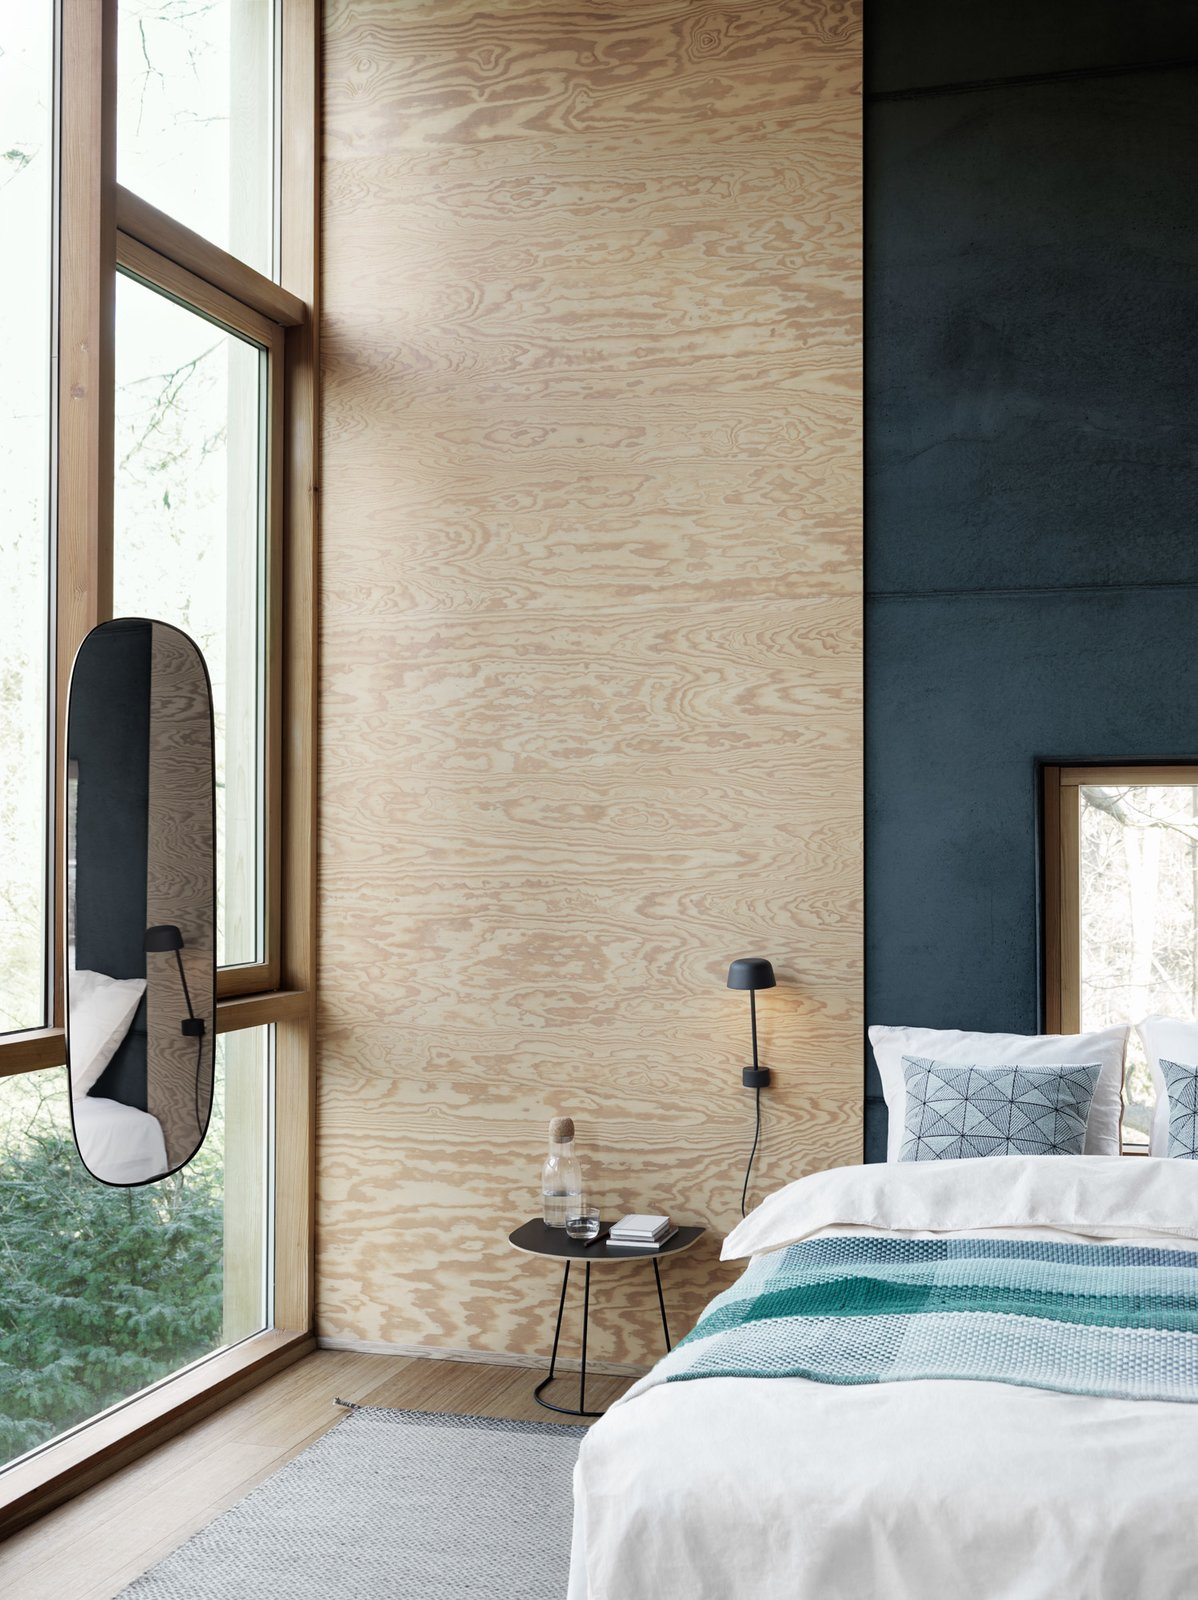 Sconces that don't take up floor space are ideal for small spaces: Muuto's new Lean wall lamp by Claesson Koivisto Rune is a nice sculptural option.  Lights by E. A. Krueger from New Products to Solve Your Tiny Apartment Woes